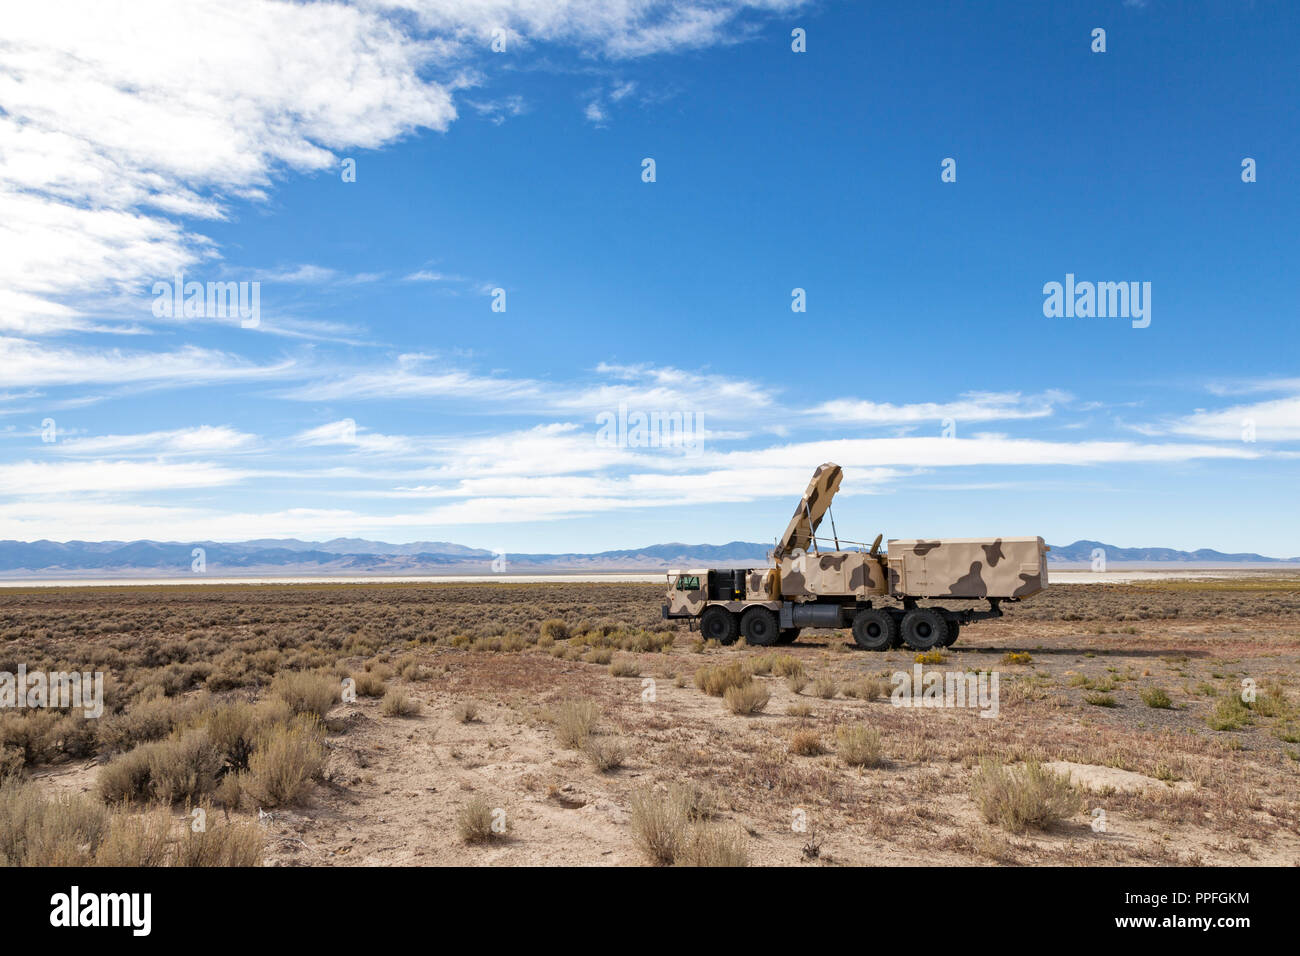 Russian built 30N6E, NATO designation Flap Lid B, tracking and missile guidance radar sits in the Nevada desert. - Stock Image